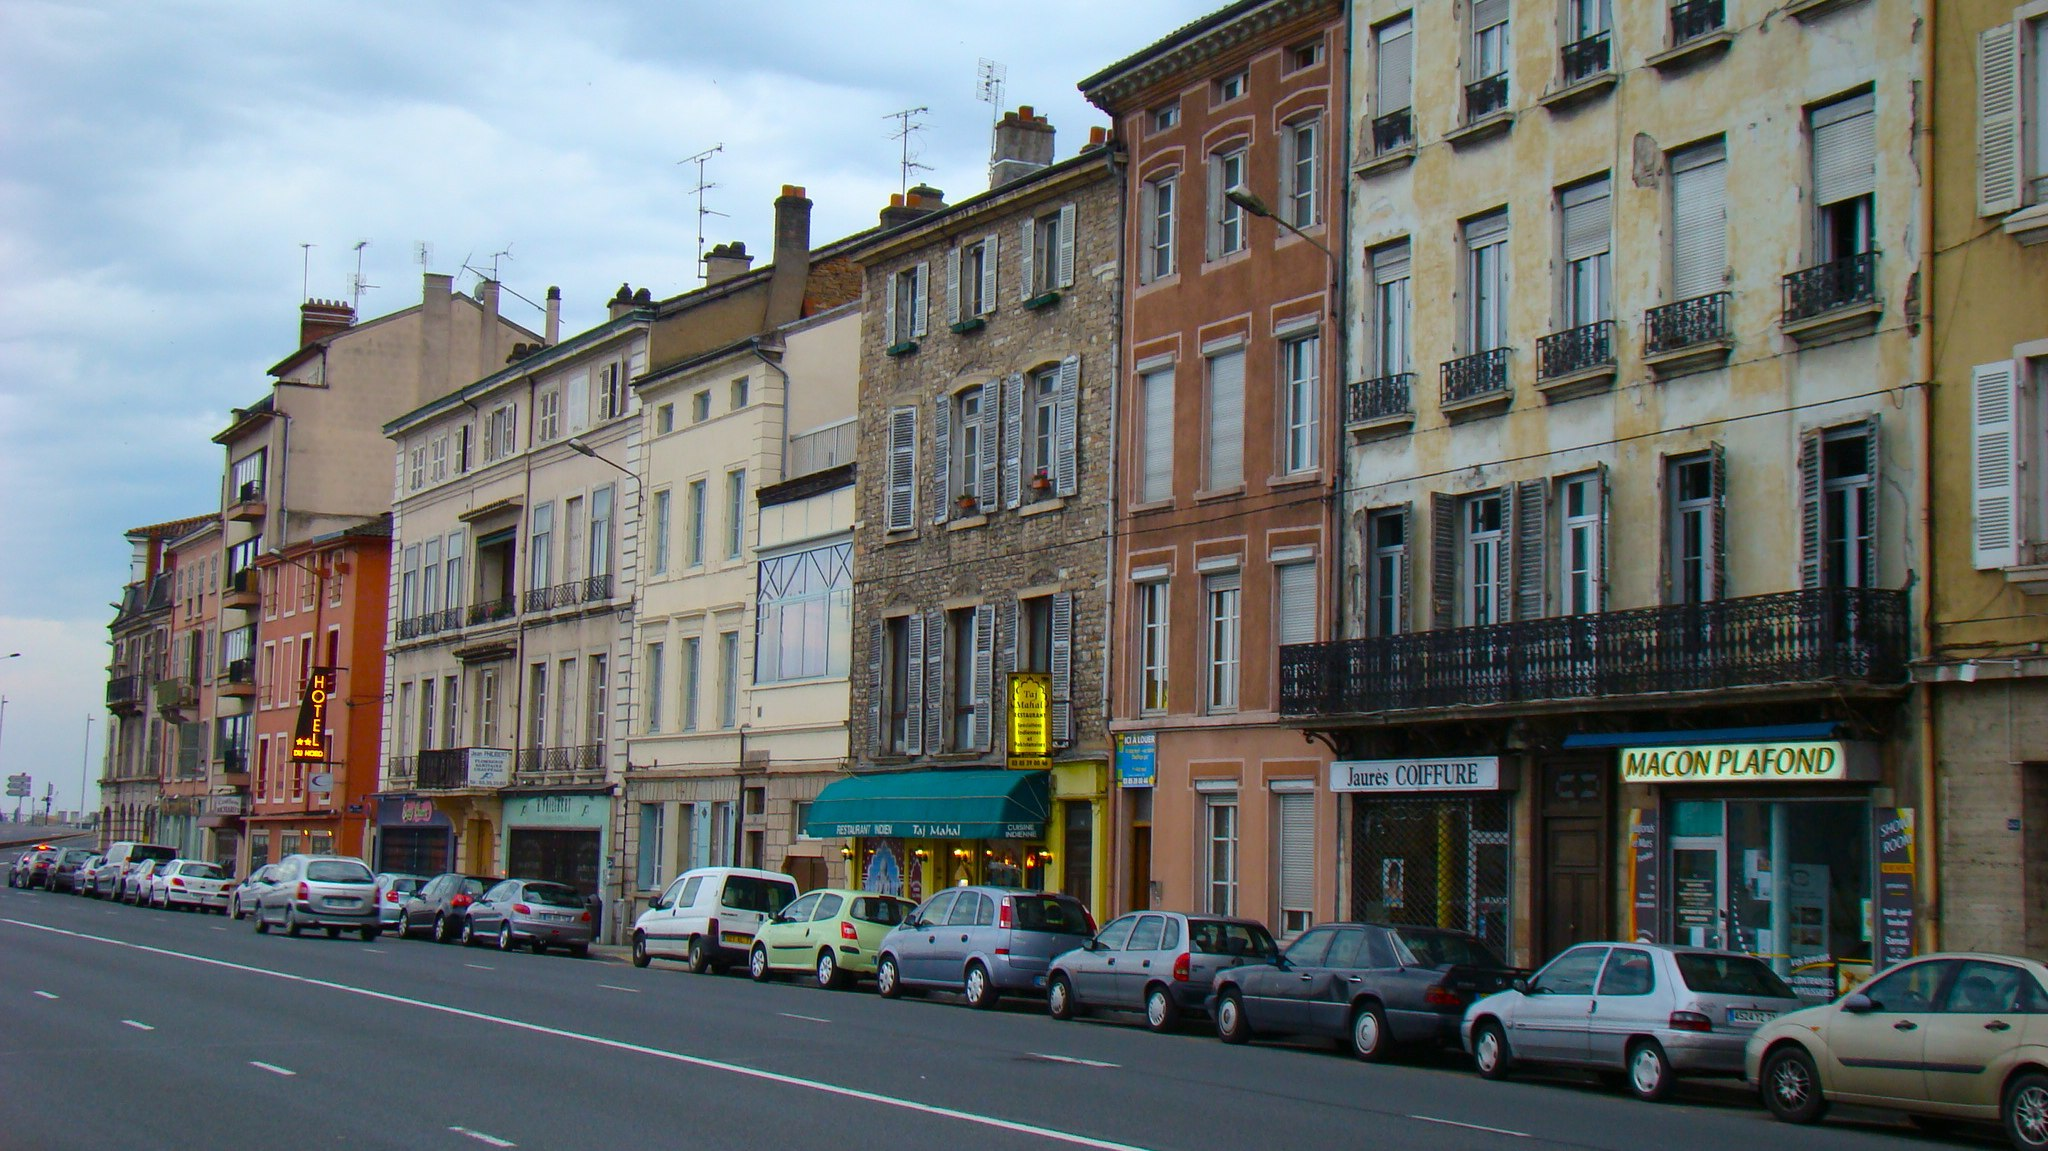 Street in Mâcon, France shows road and apartment buildings